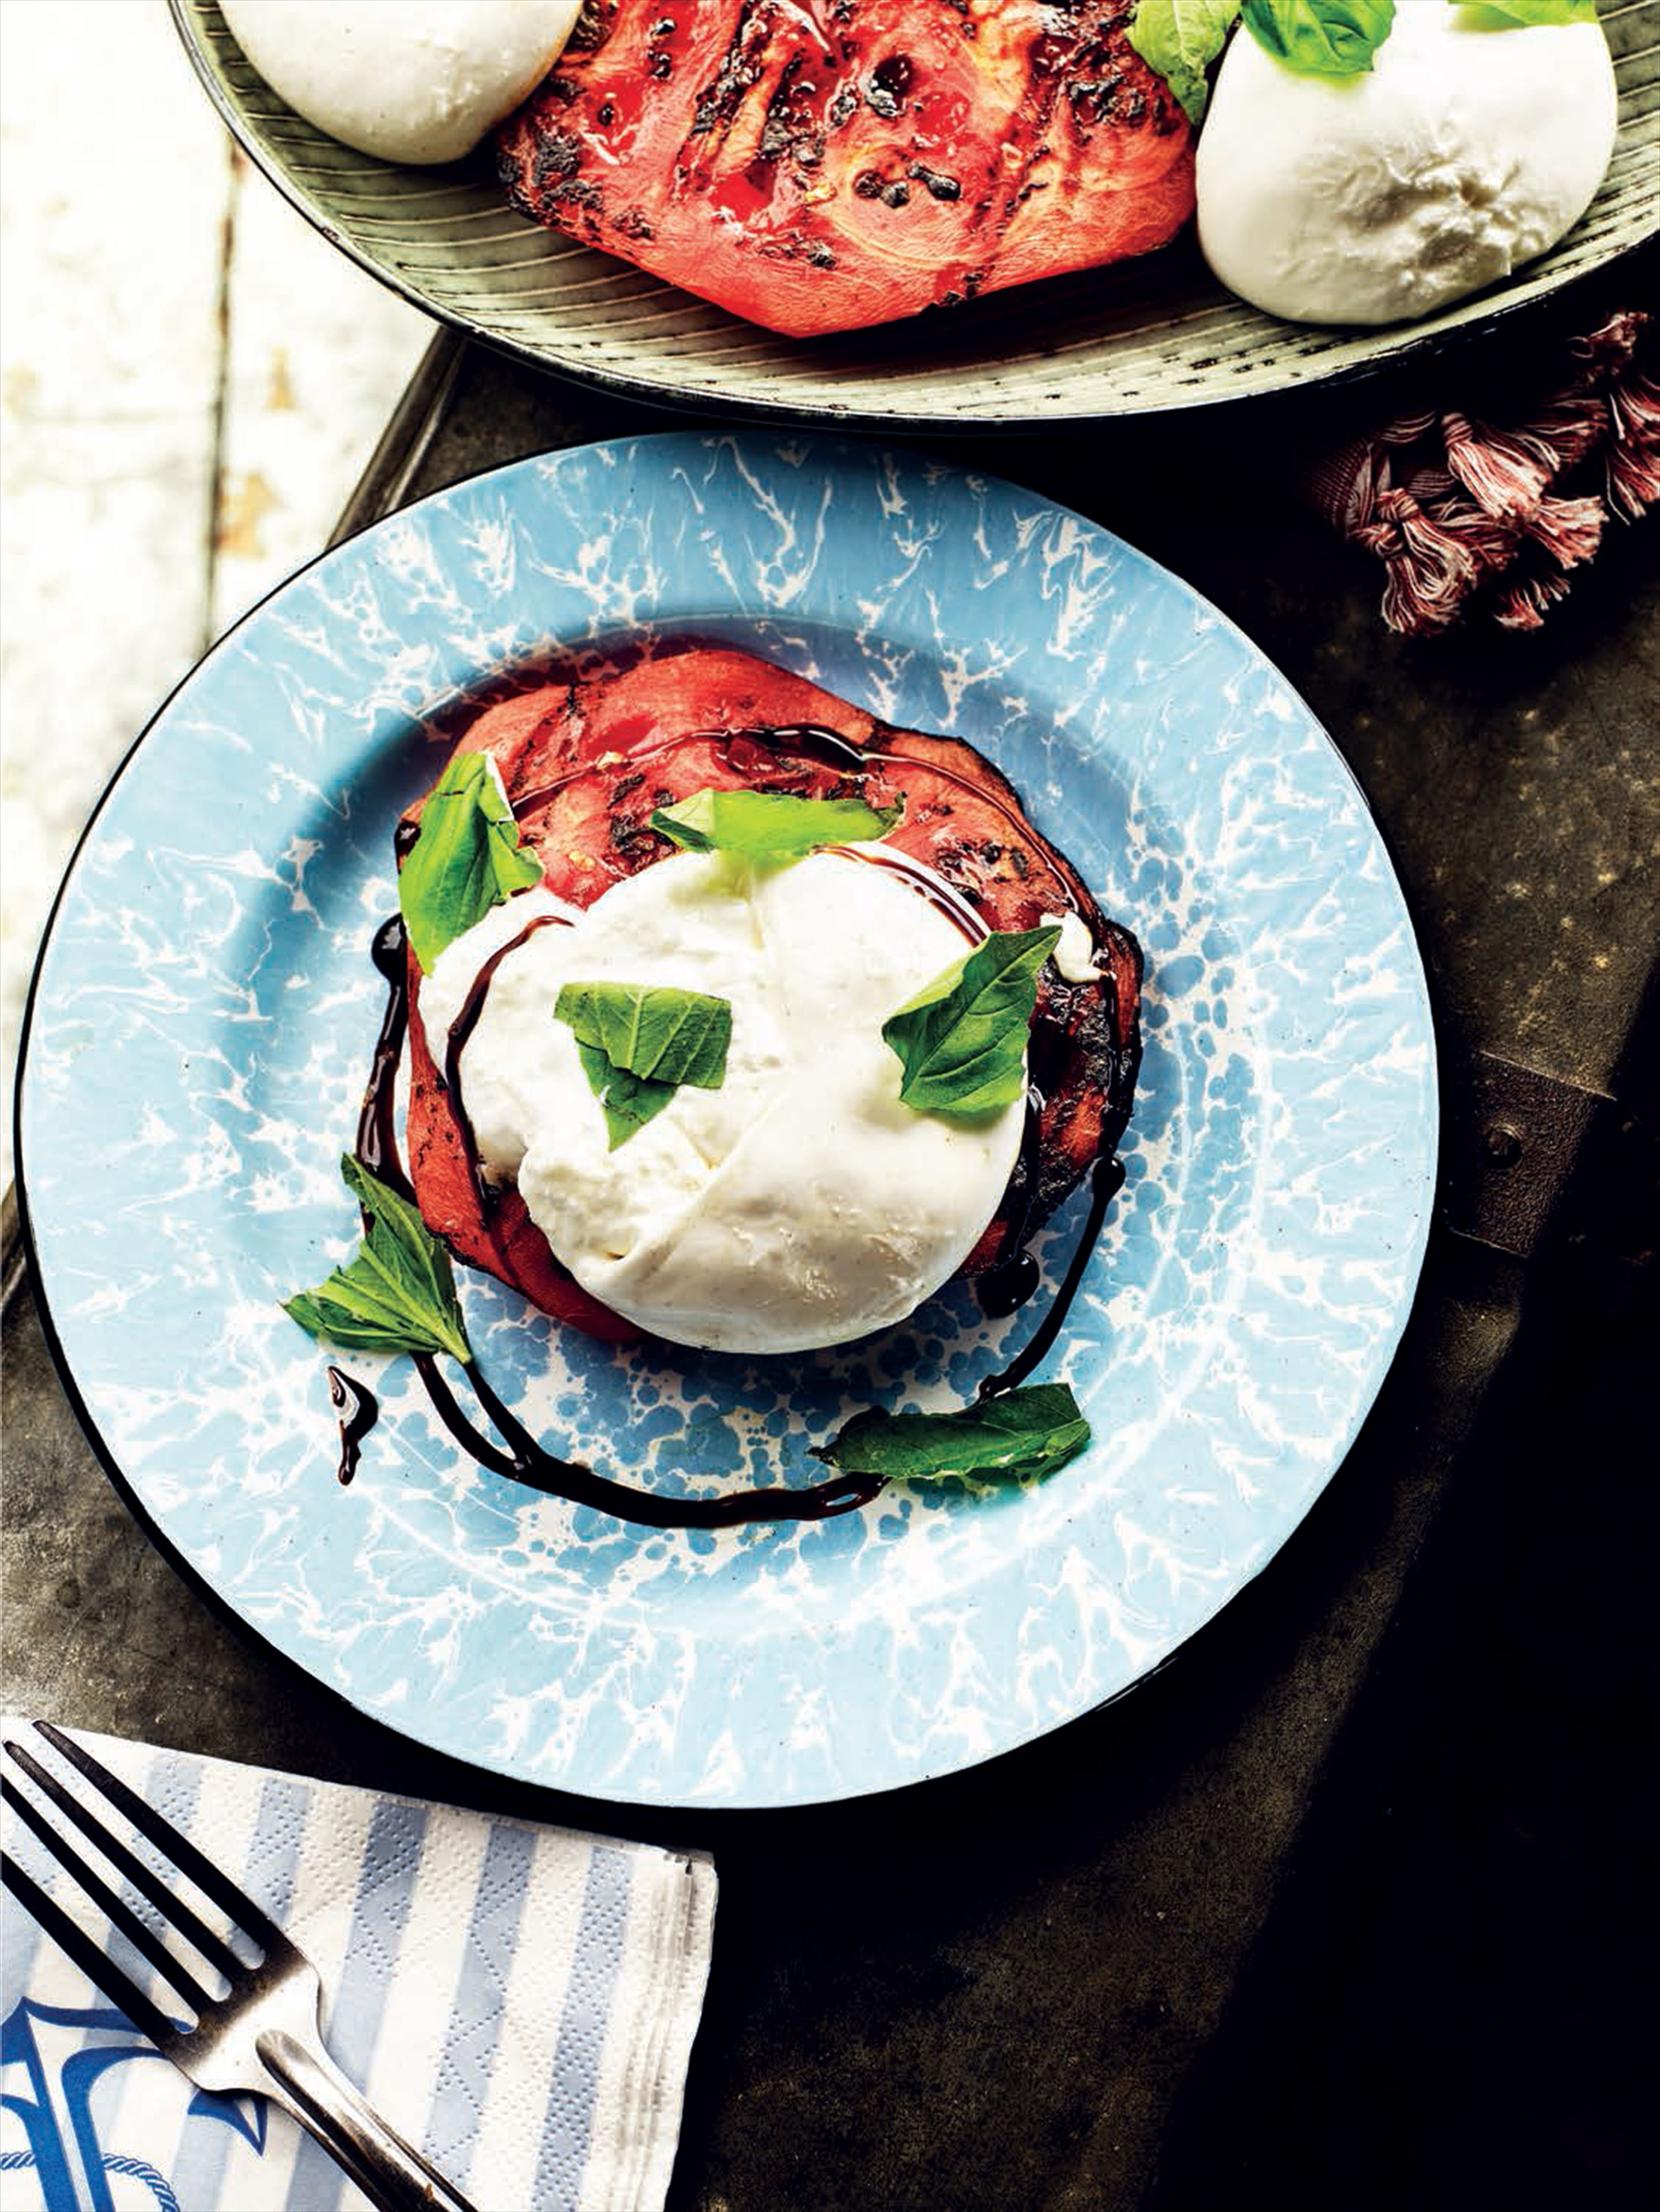 Smoky grilled watermelon with burrata, balsamic and basil